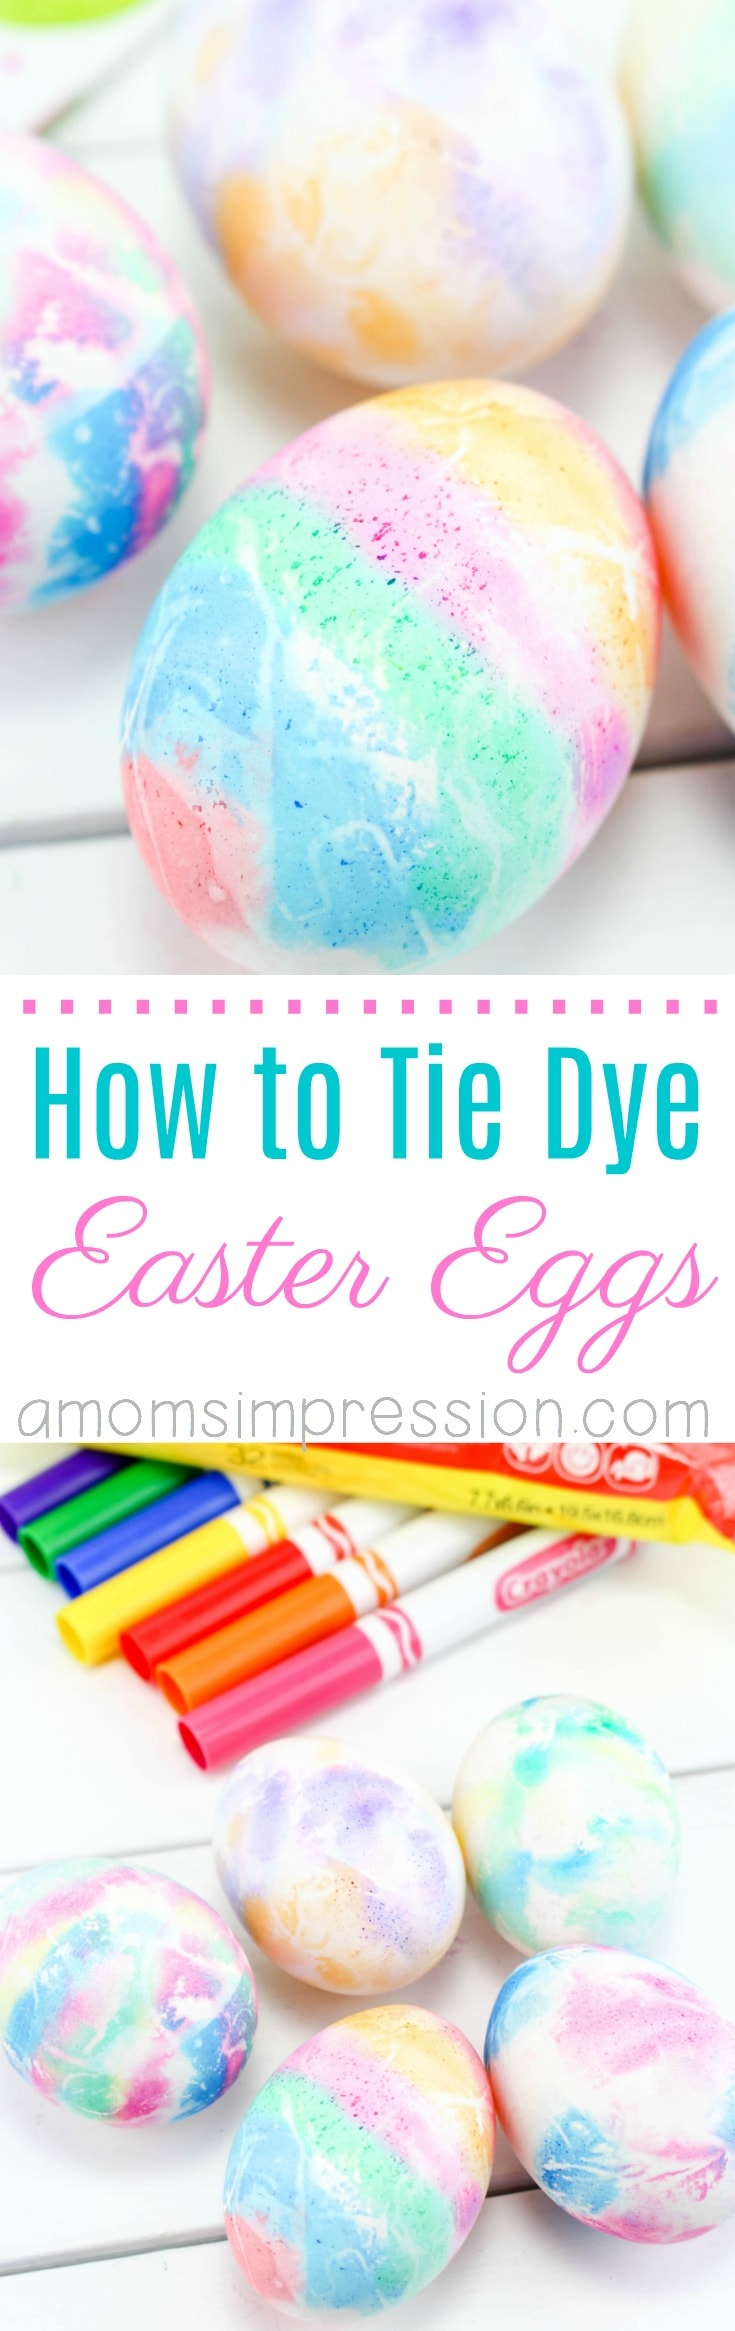 Looking for a fun way to tie dye Easter eggs that you can do with your toddler? This simple tutorial uses everyday markers making coloring and decorating eggs so easy. This is perfect for any aged kid or adult! #Easter